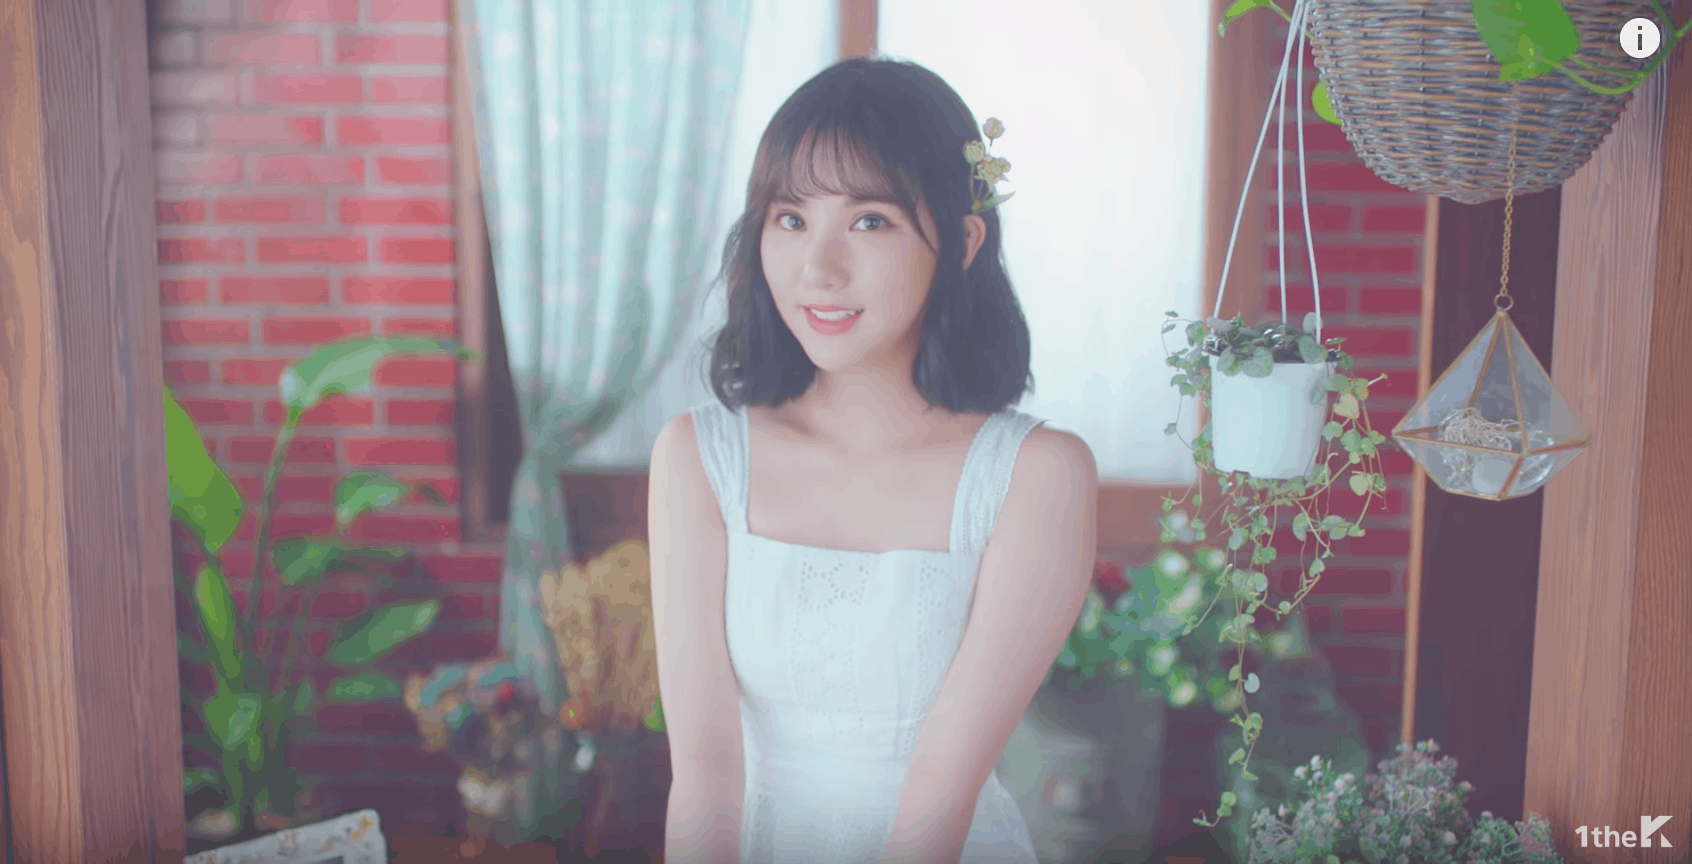 GFRIEND Love Whisper music video: Girl wears a white dress and a flower in her hair